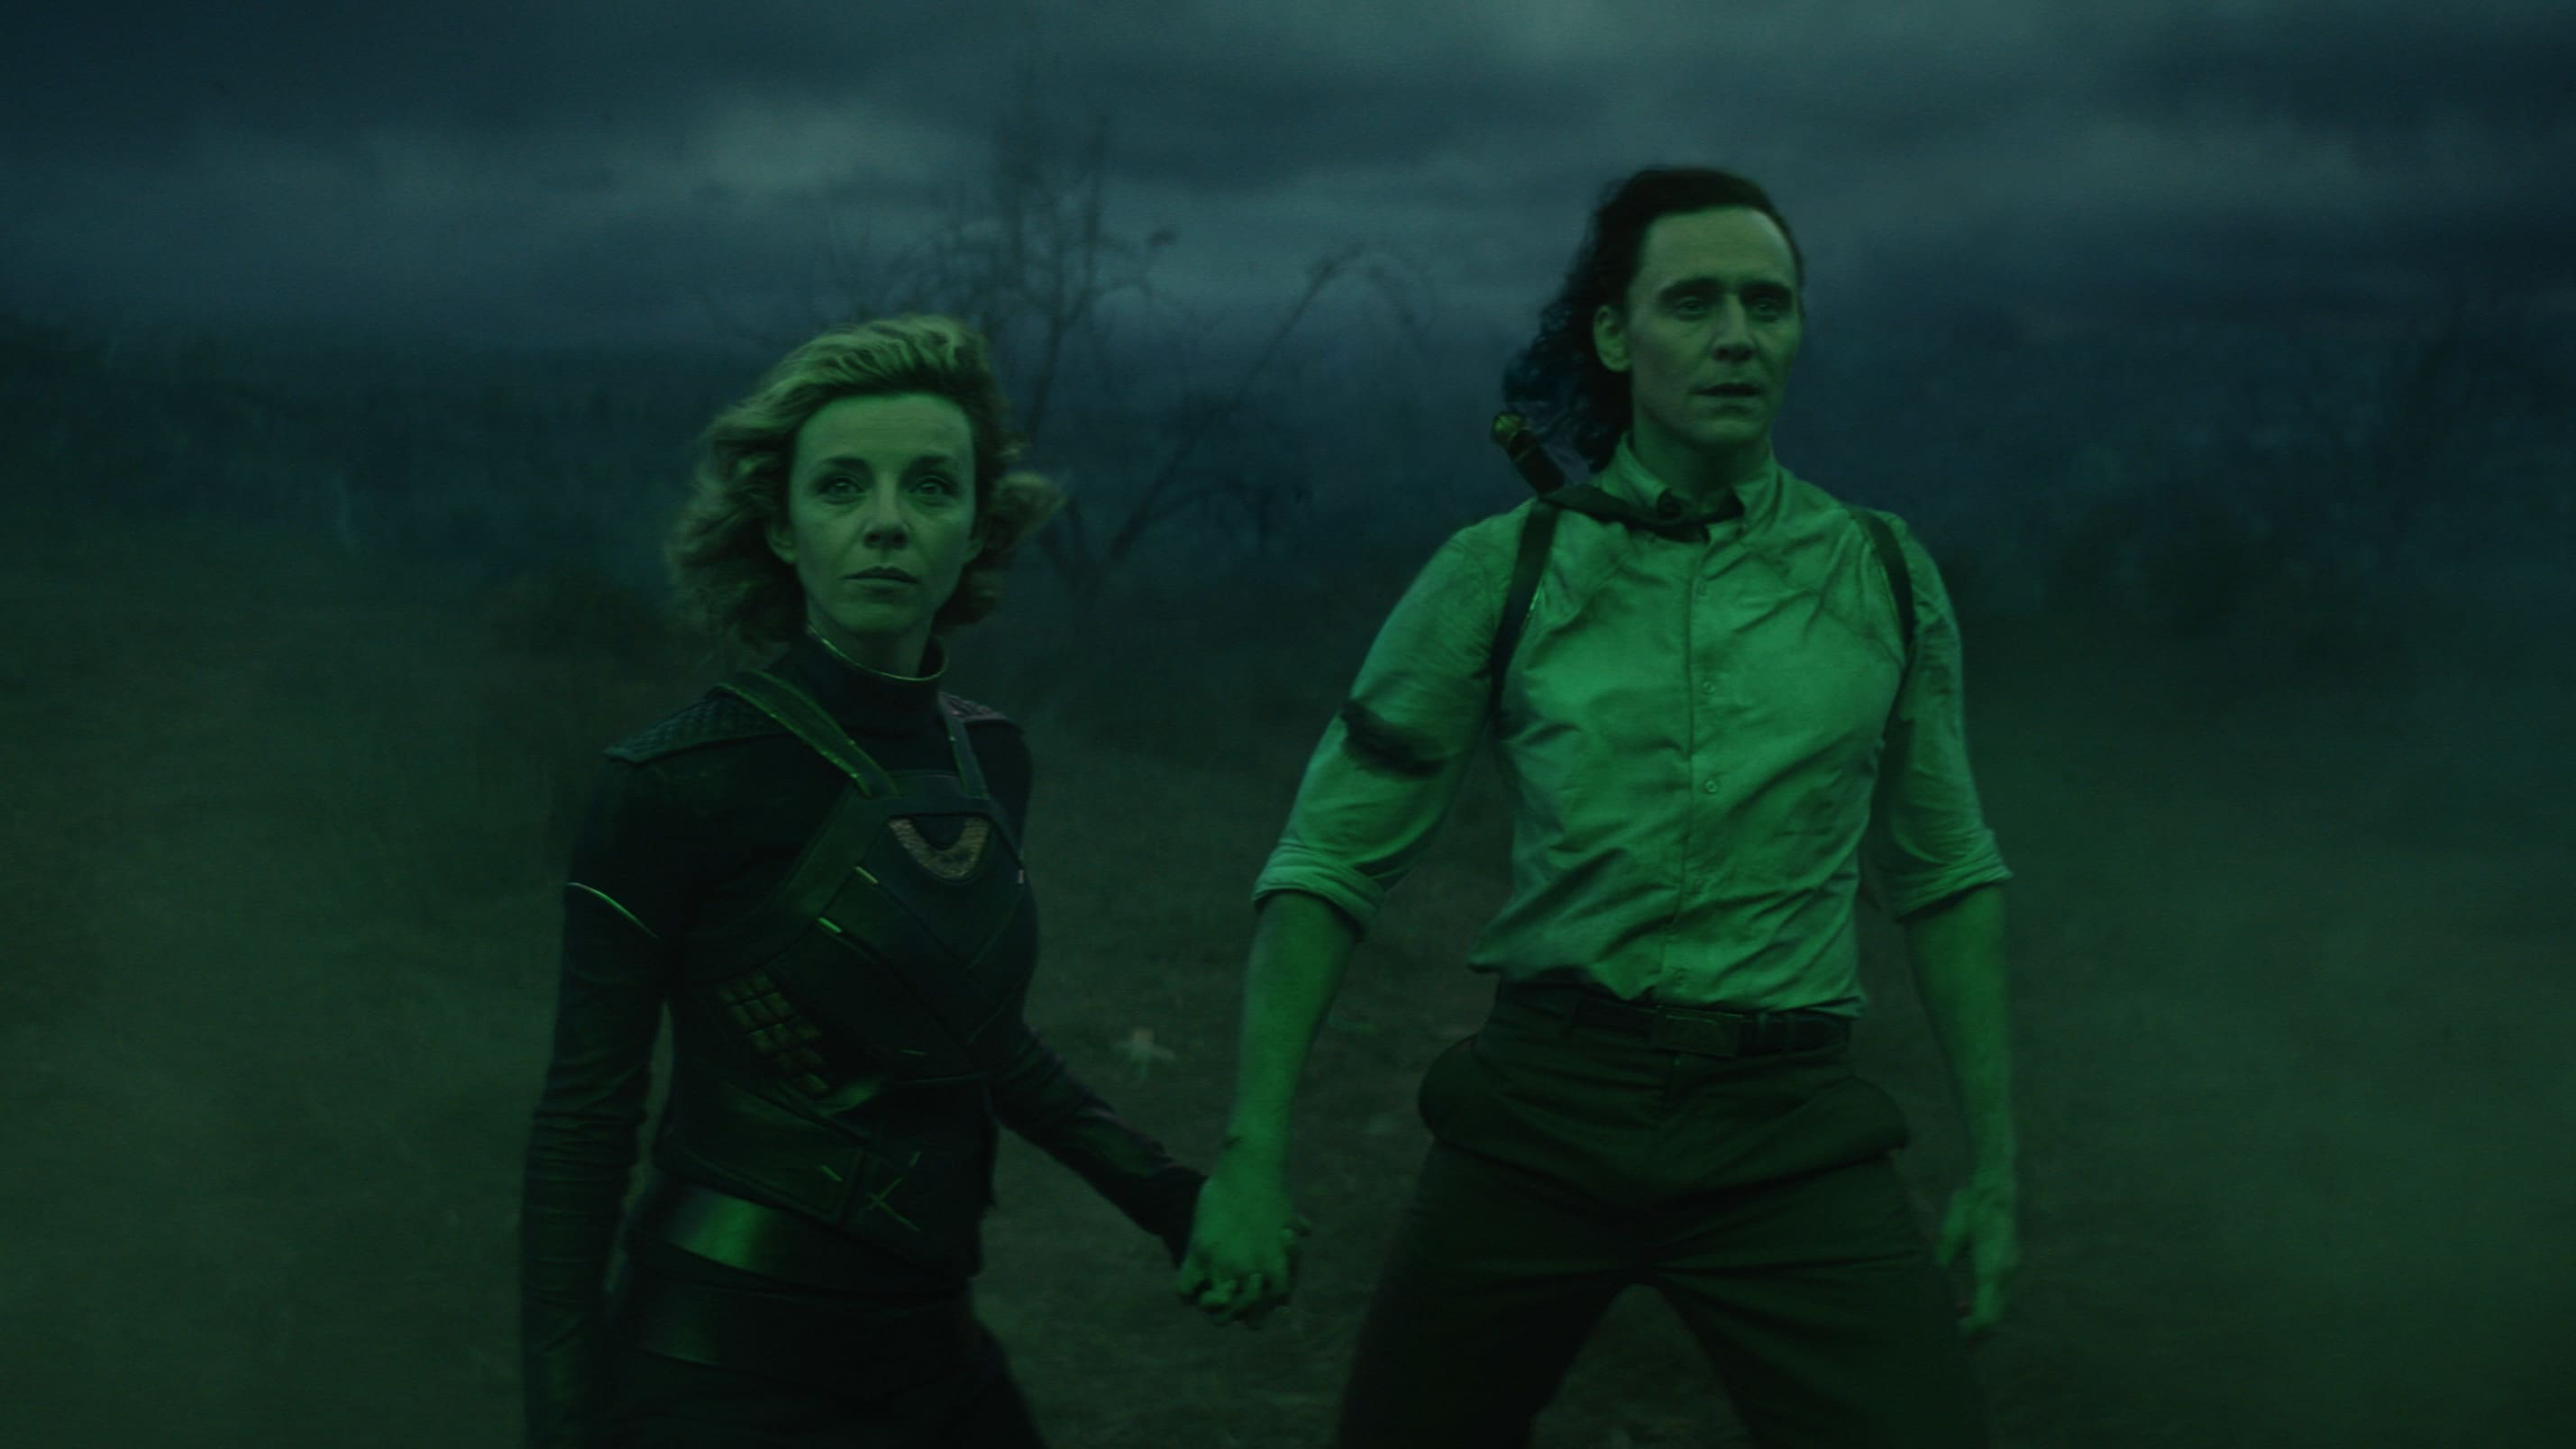 (L-R): Sylvie (Sophia Di Martino) and Loki (TomHiddleston) in Marvel Studios' LOKI, exclusively on Disney+. Photo courtesy of Marvel Studios. ©Marvel Studios 2021. All Rights Reserved.